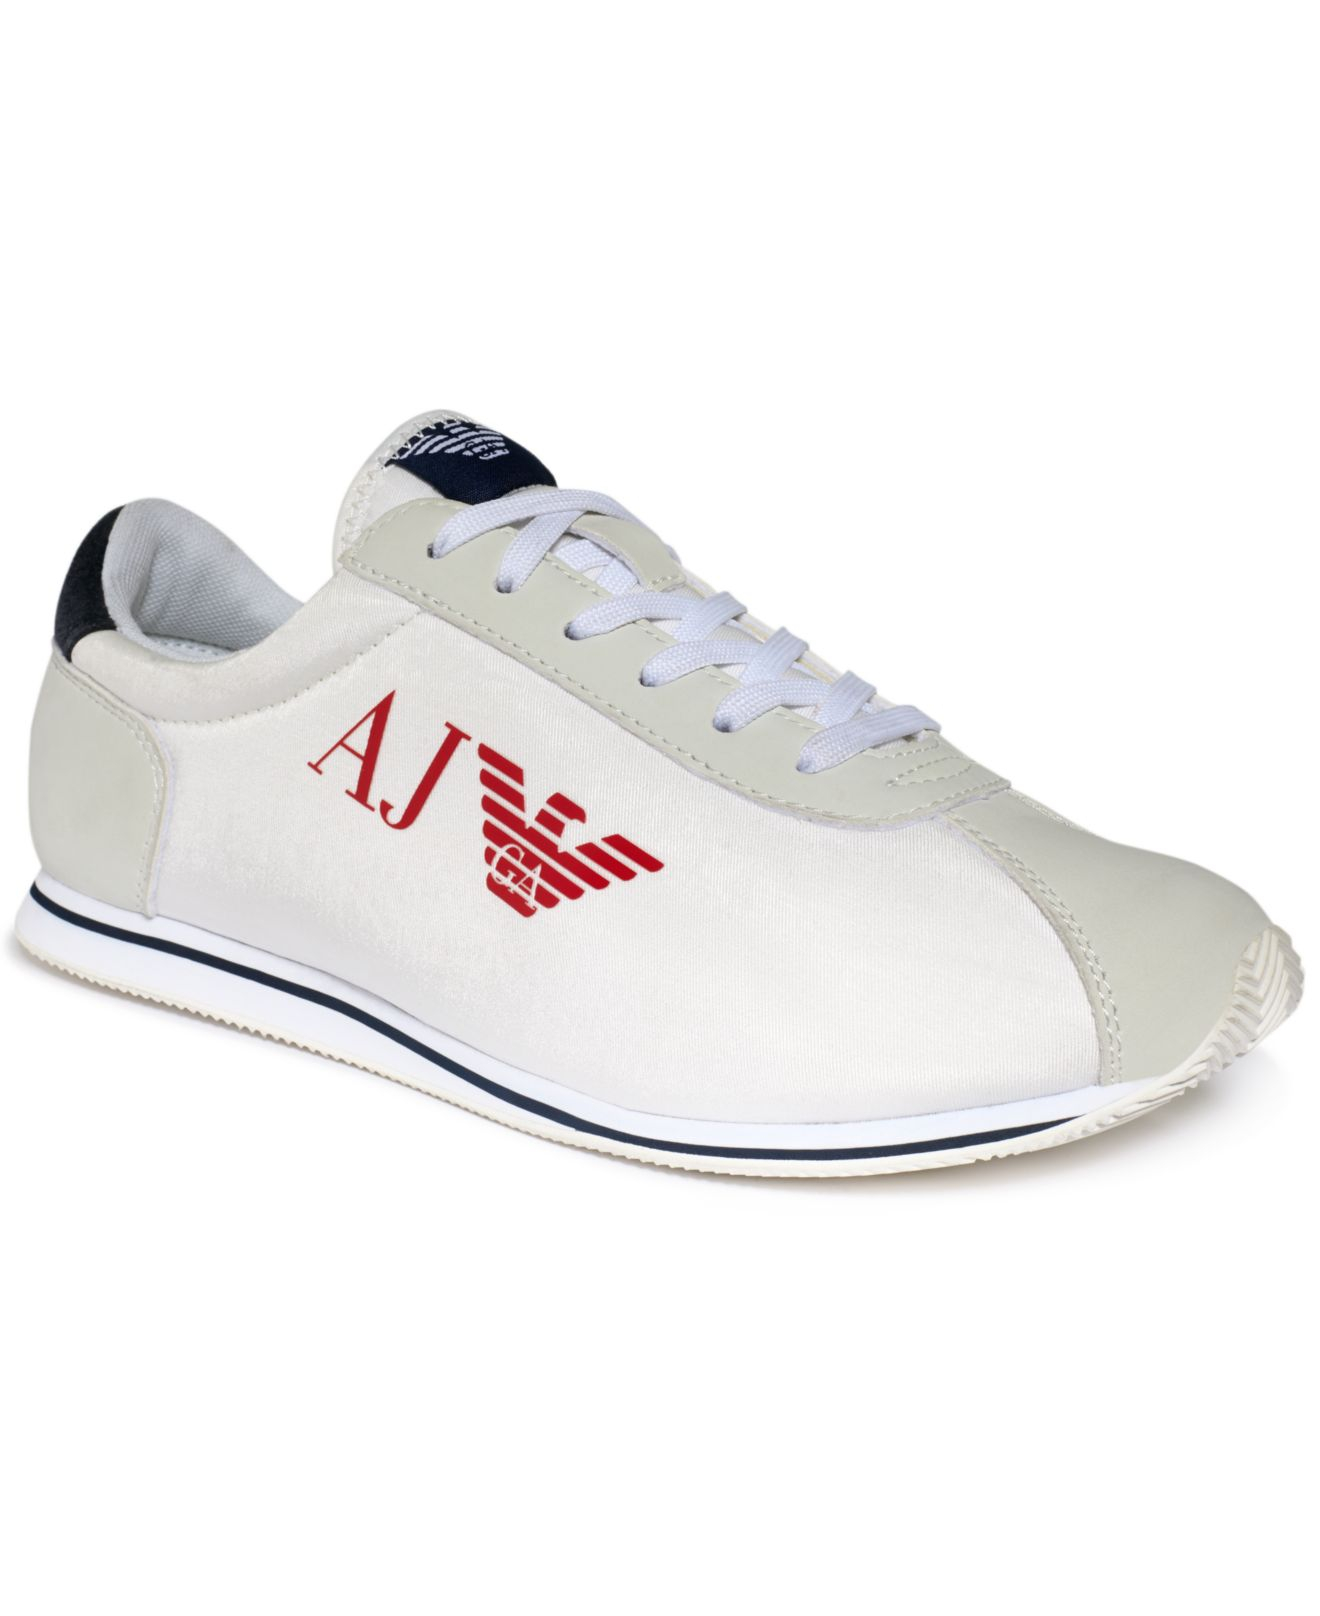 lyst armani jeans eagle sneakers in white for men. Black Bedroom Furniture Sets. Home Design Ideas